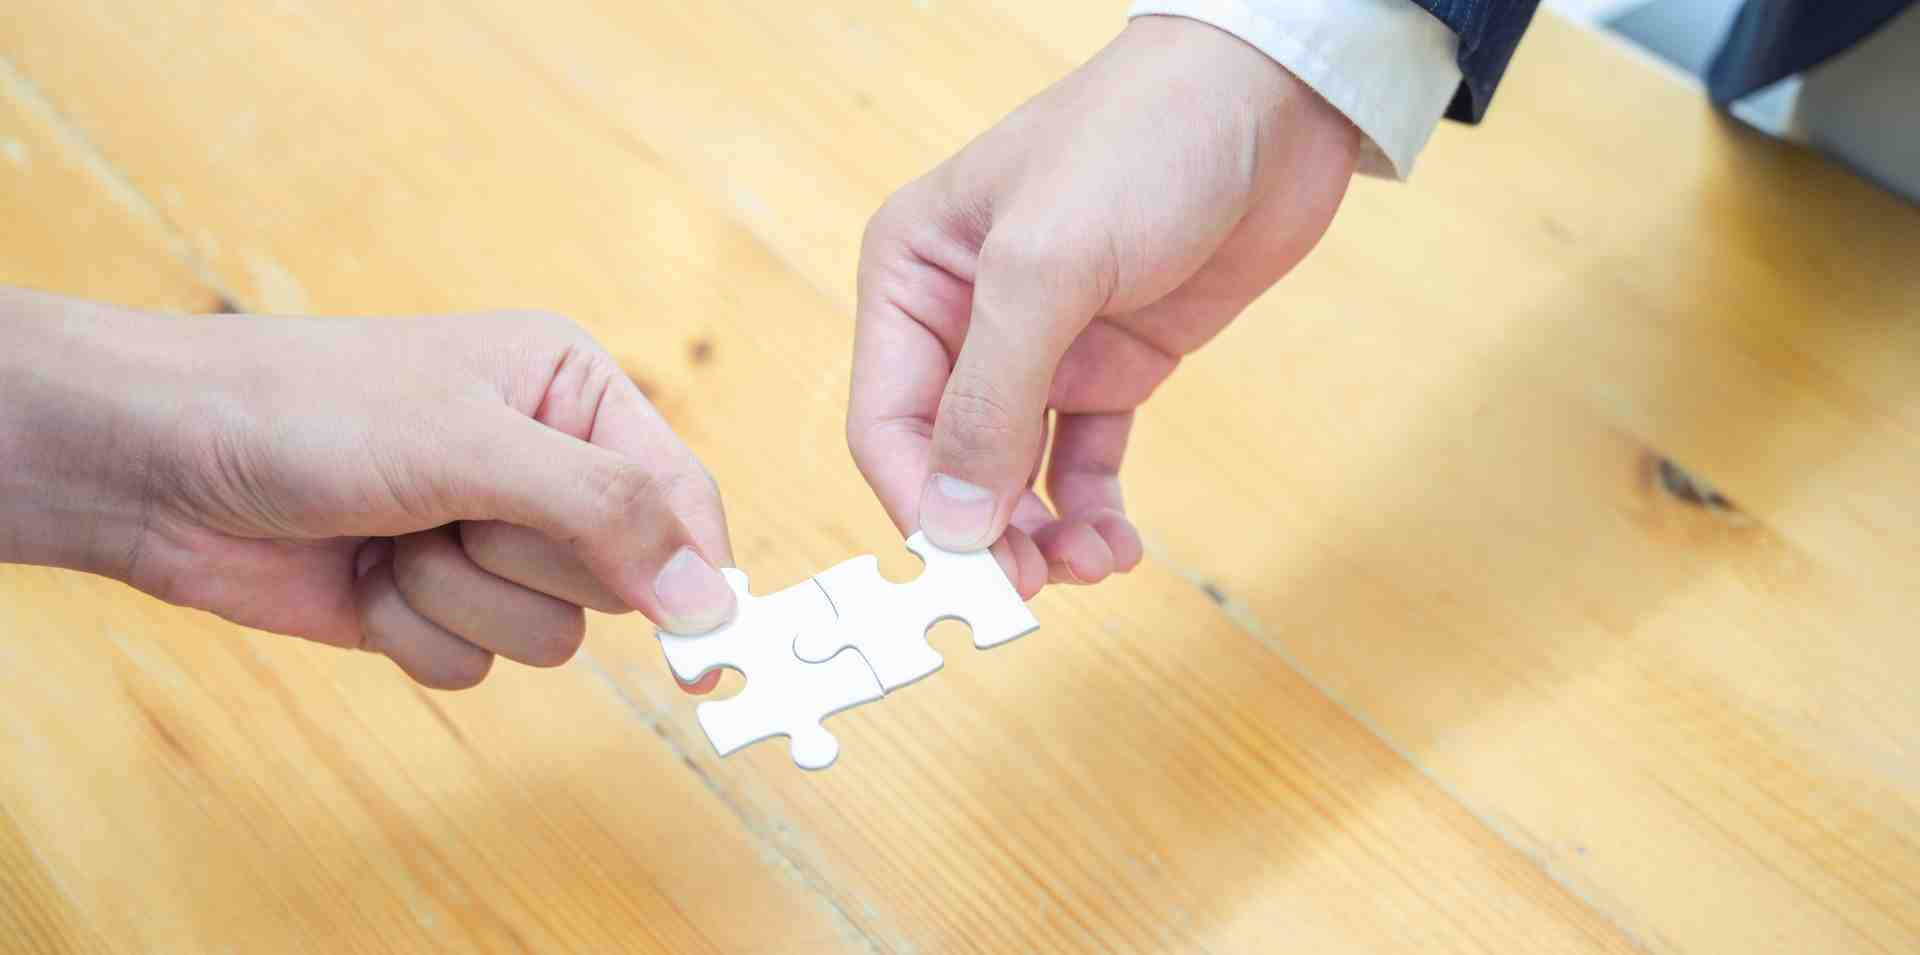 person-holding-white-jigsaw-puzzle-piece-3740403 (1) (1)